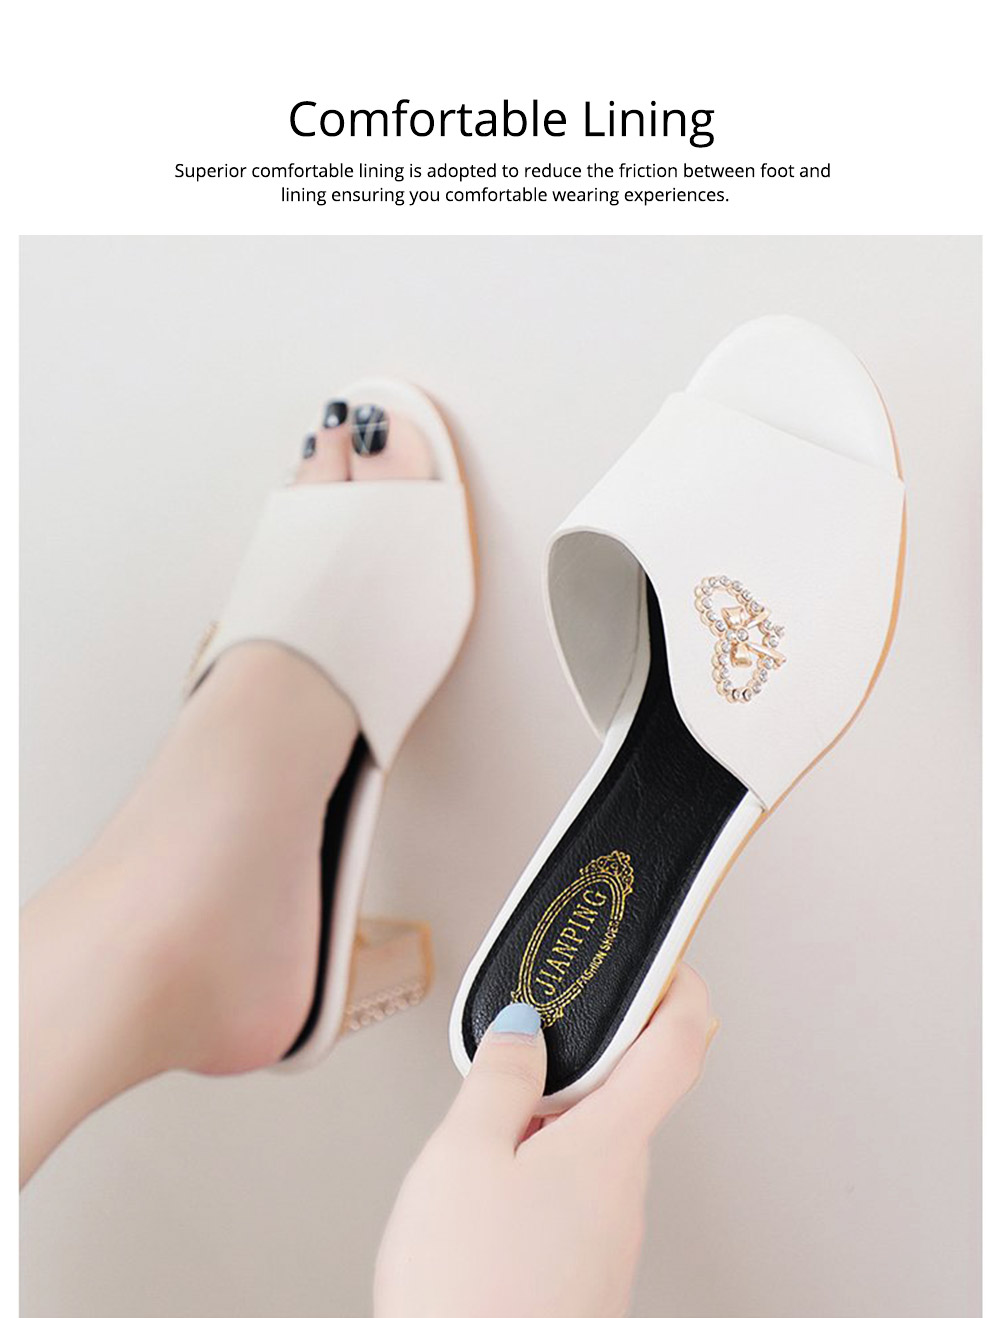 Minimalist Elegant Rhinestone Decoration High-heeled Sandals, Comfortable Skin-friendly PU Leather Chunky Heels Sandals Outdoors 2